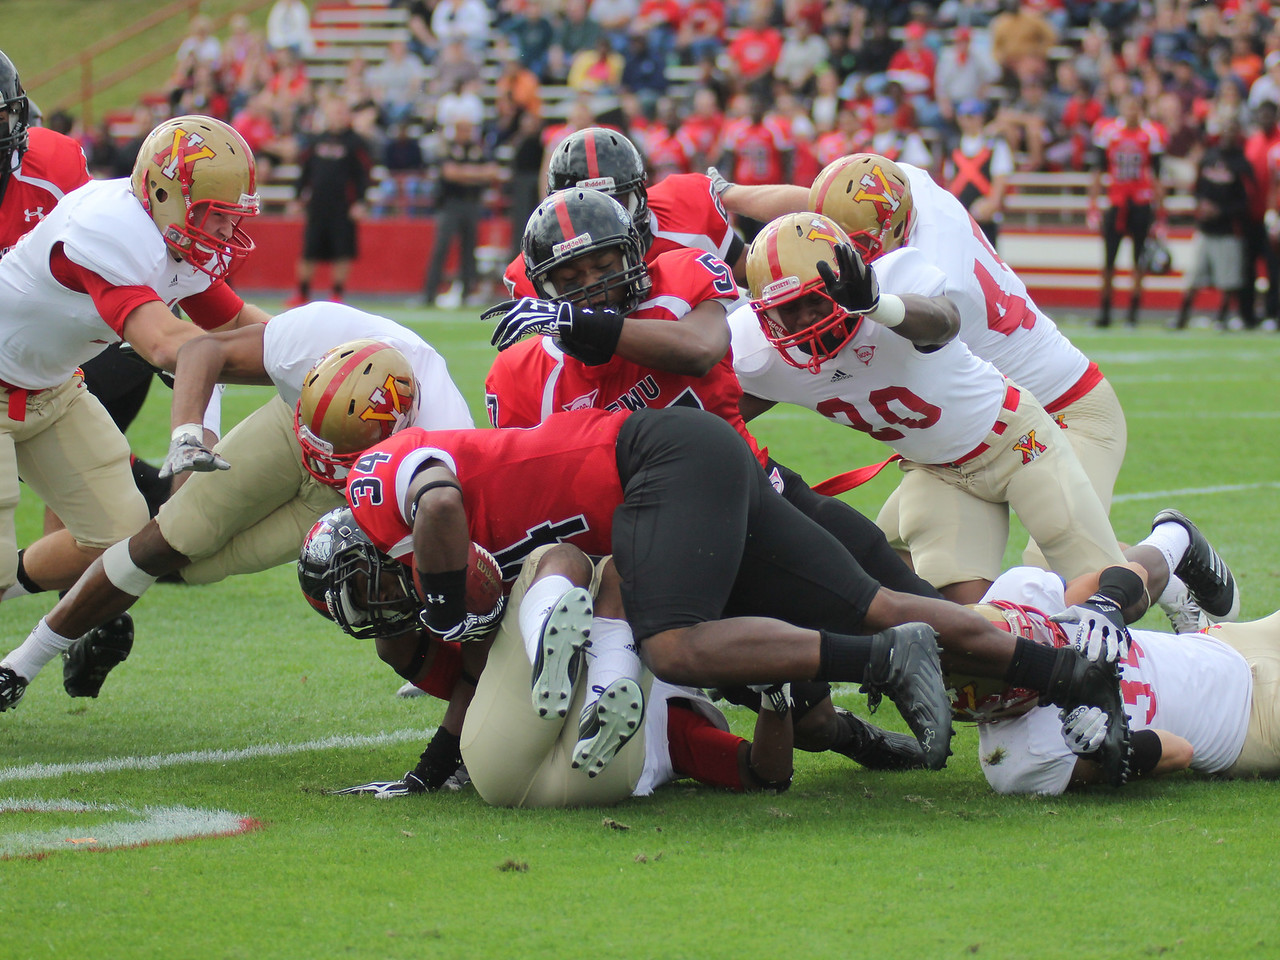 Earnest Harmon (34) carries the ball for GWU